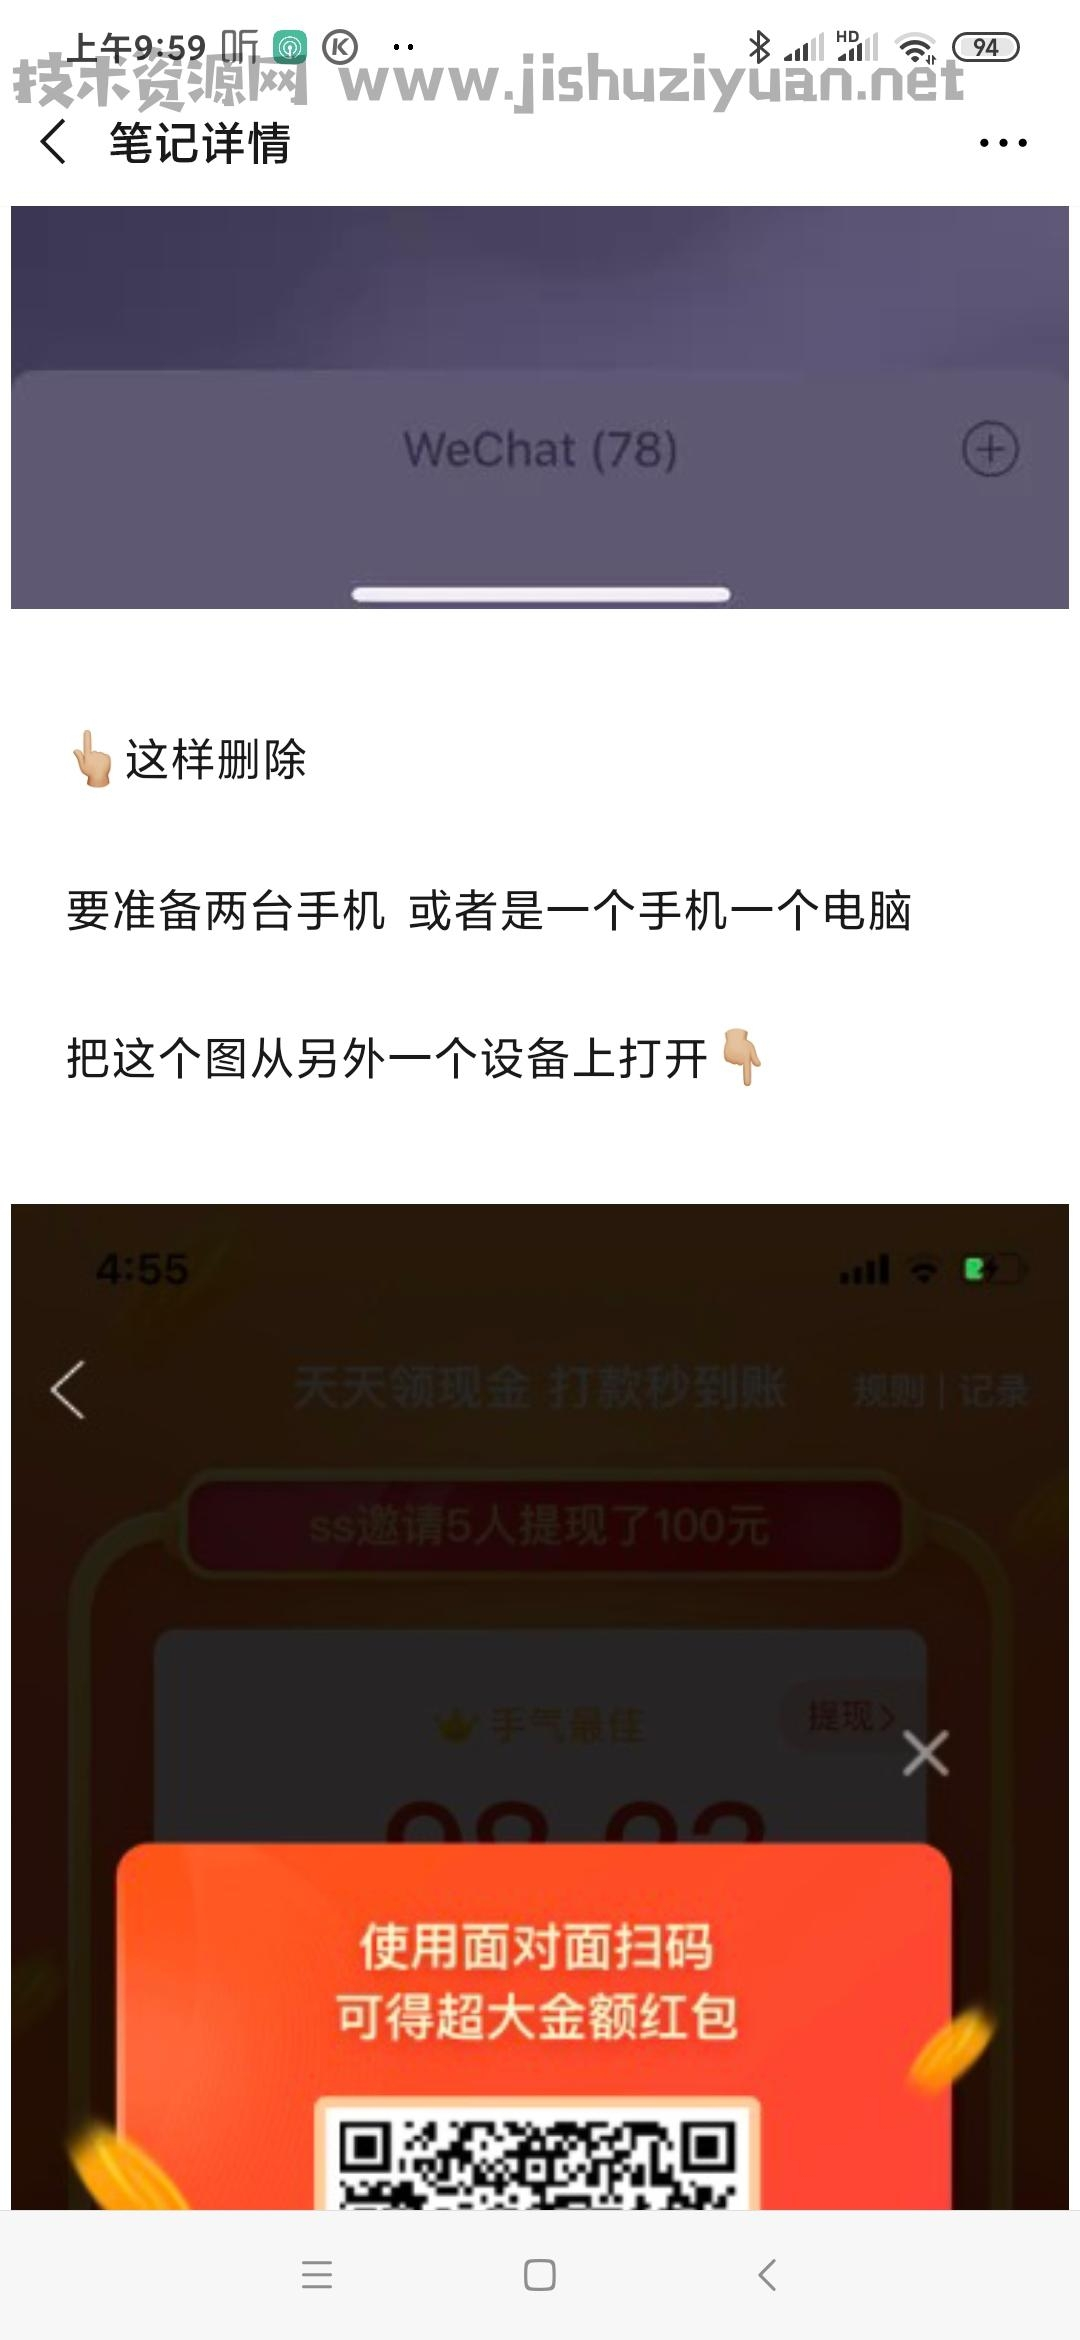 Screenshot_2020-08-22-09-59-59-136_com.tencent.mm.jpg